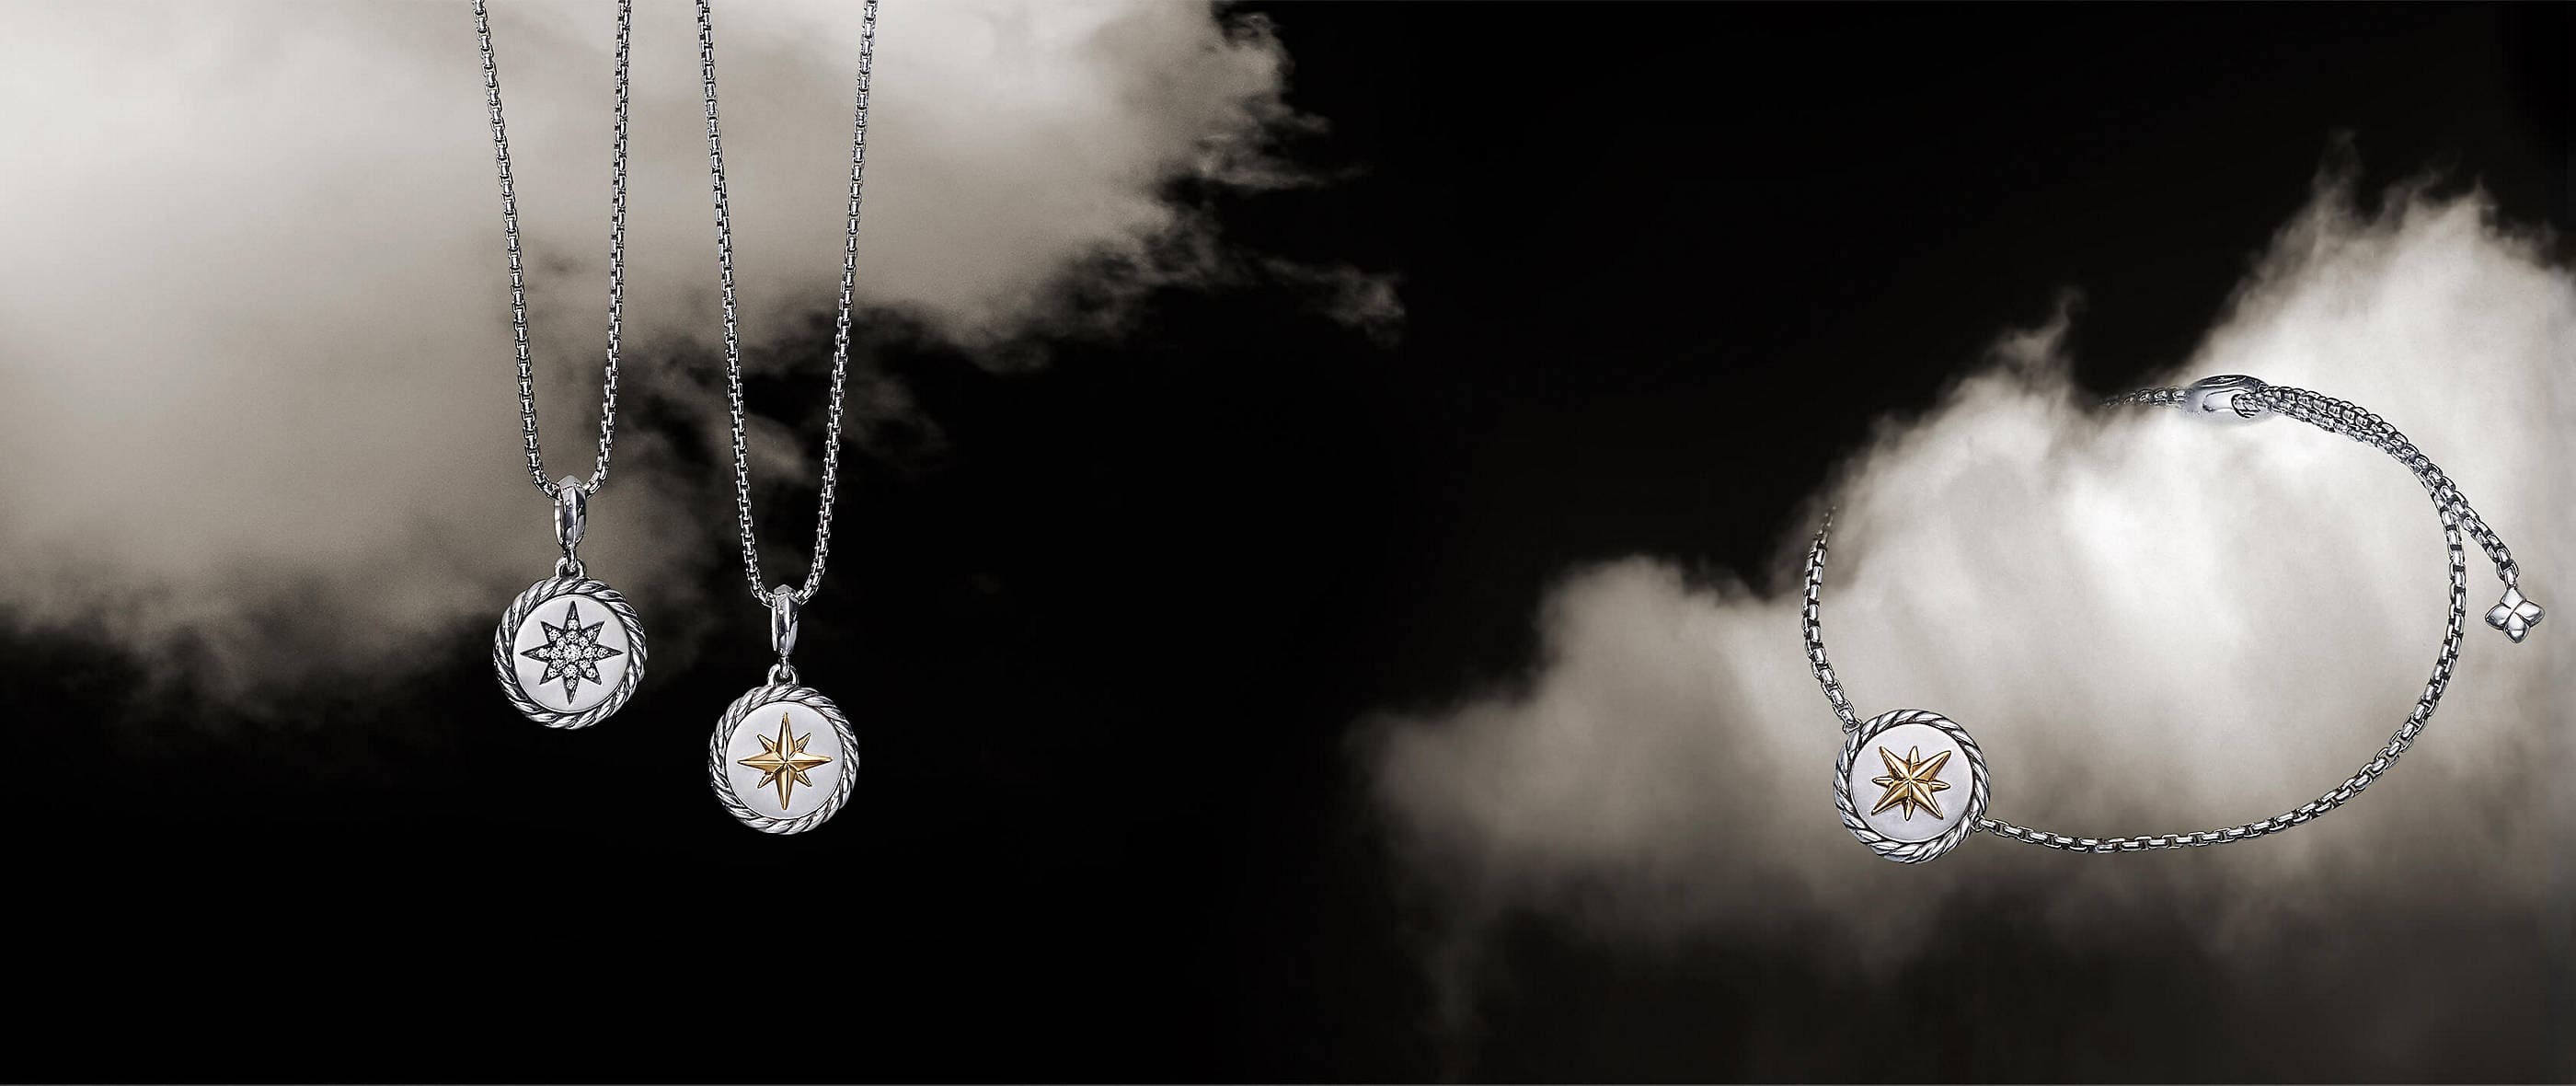 A color photograph two David Yurman women's North Star pendant necklaces hanging in front of a white cloud next to a North Star bracelet floating on a white cloud in a starry night sky. The jewelry is crafted from sterling silver with star-shaped diamond accents or sterling silver with star-shaped 18K yellow gold accents.